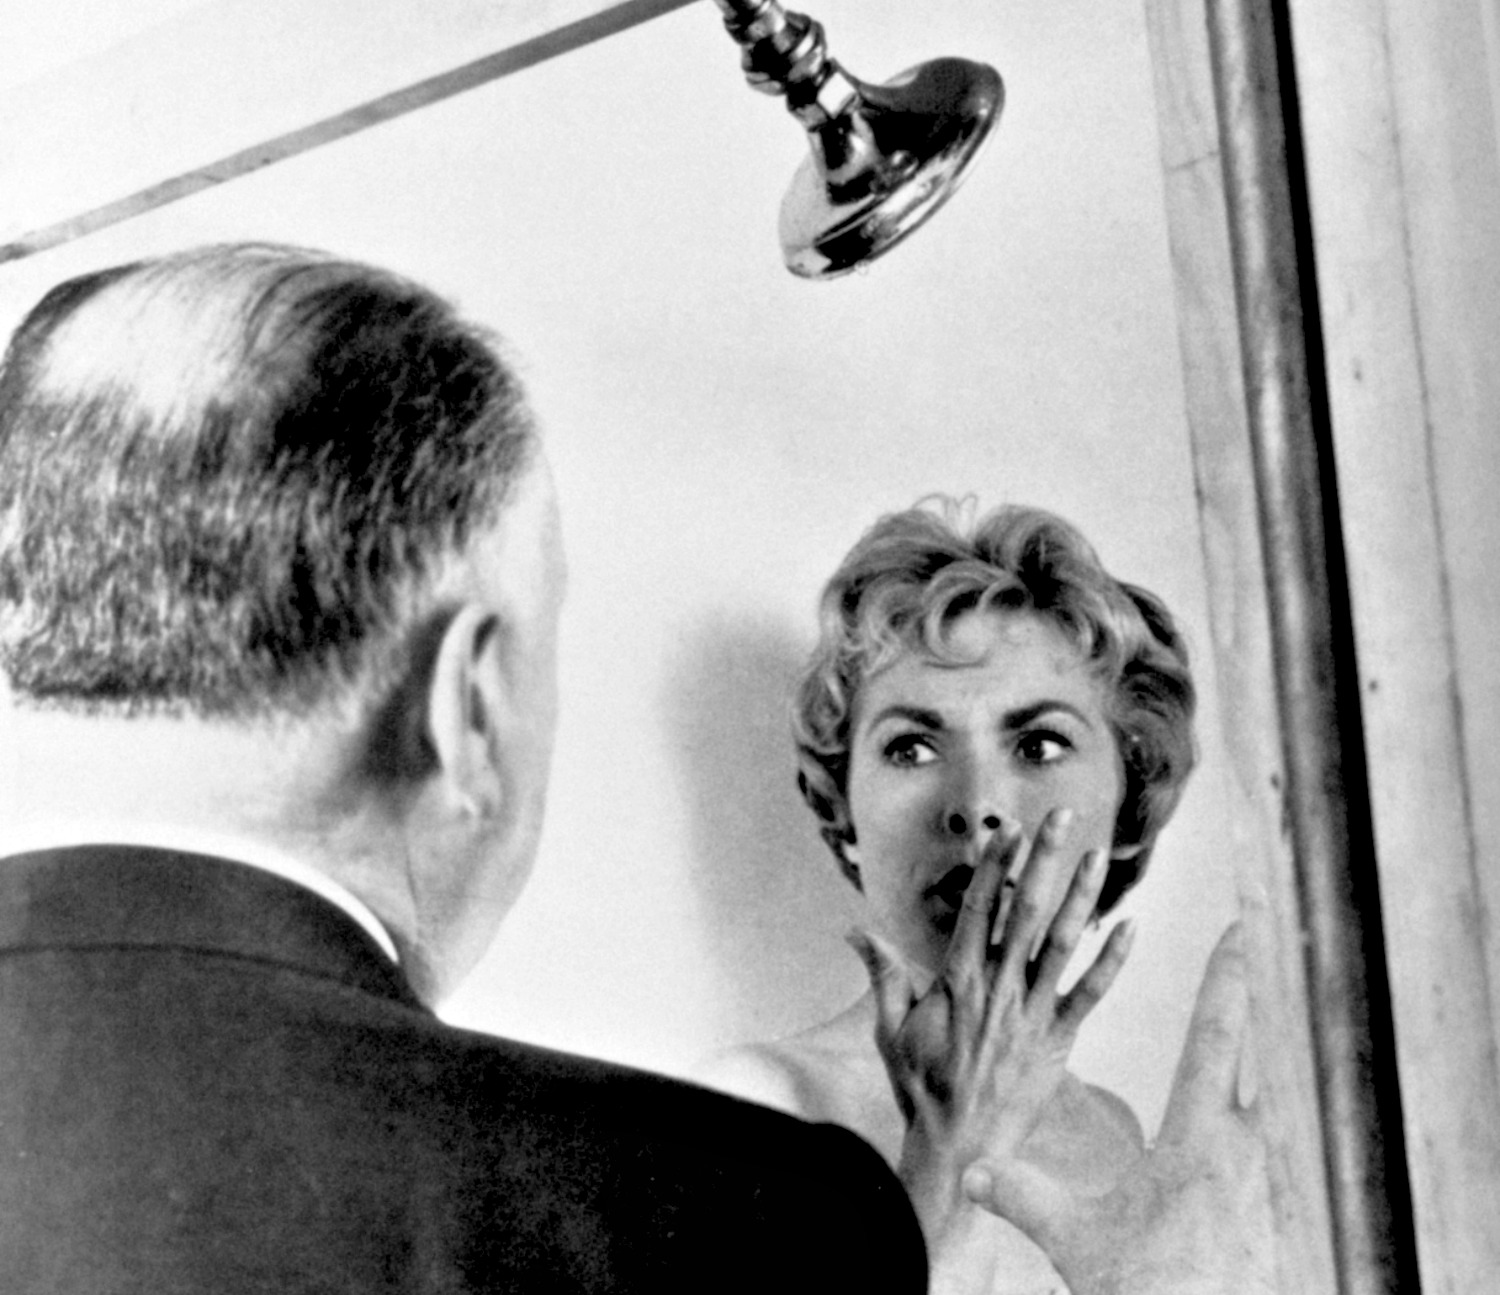 Alfred Hitchcock directs Janet Leigh in Psycho (1960)